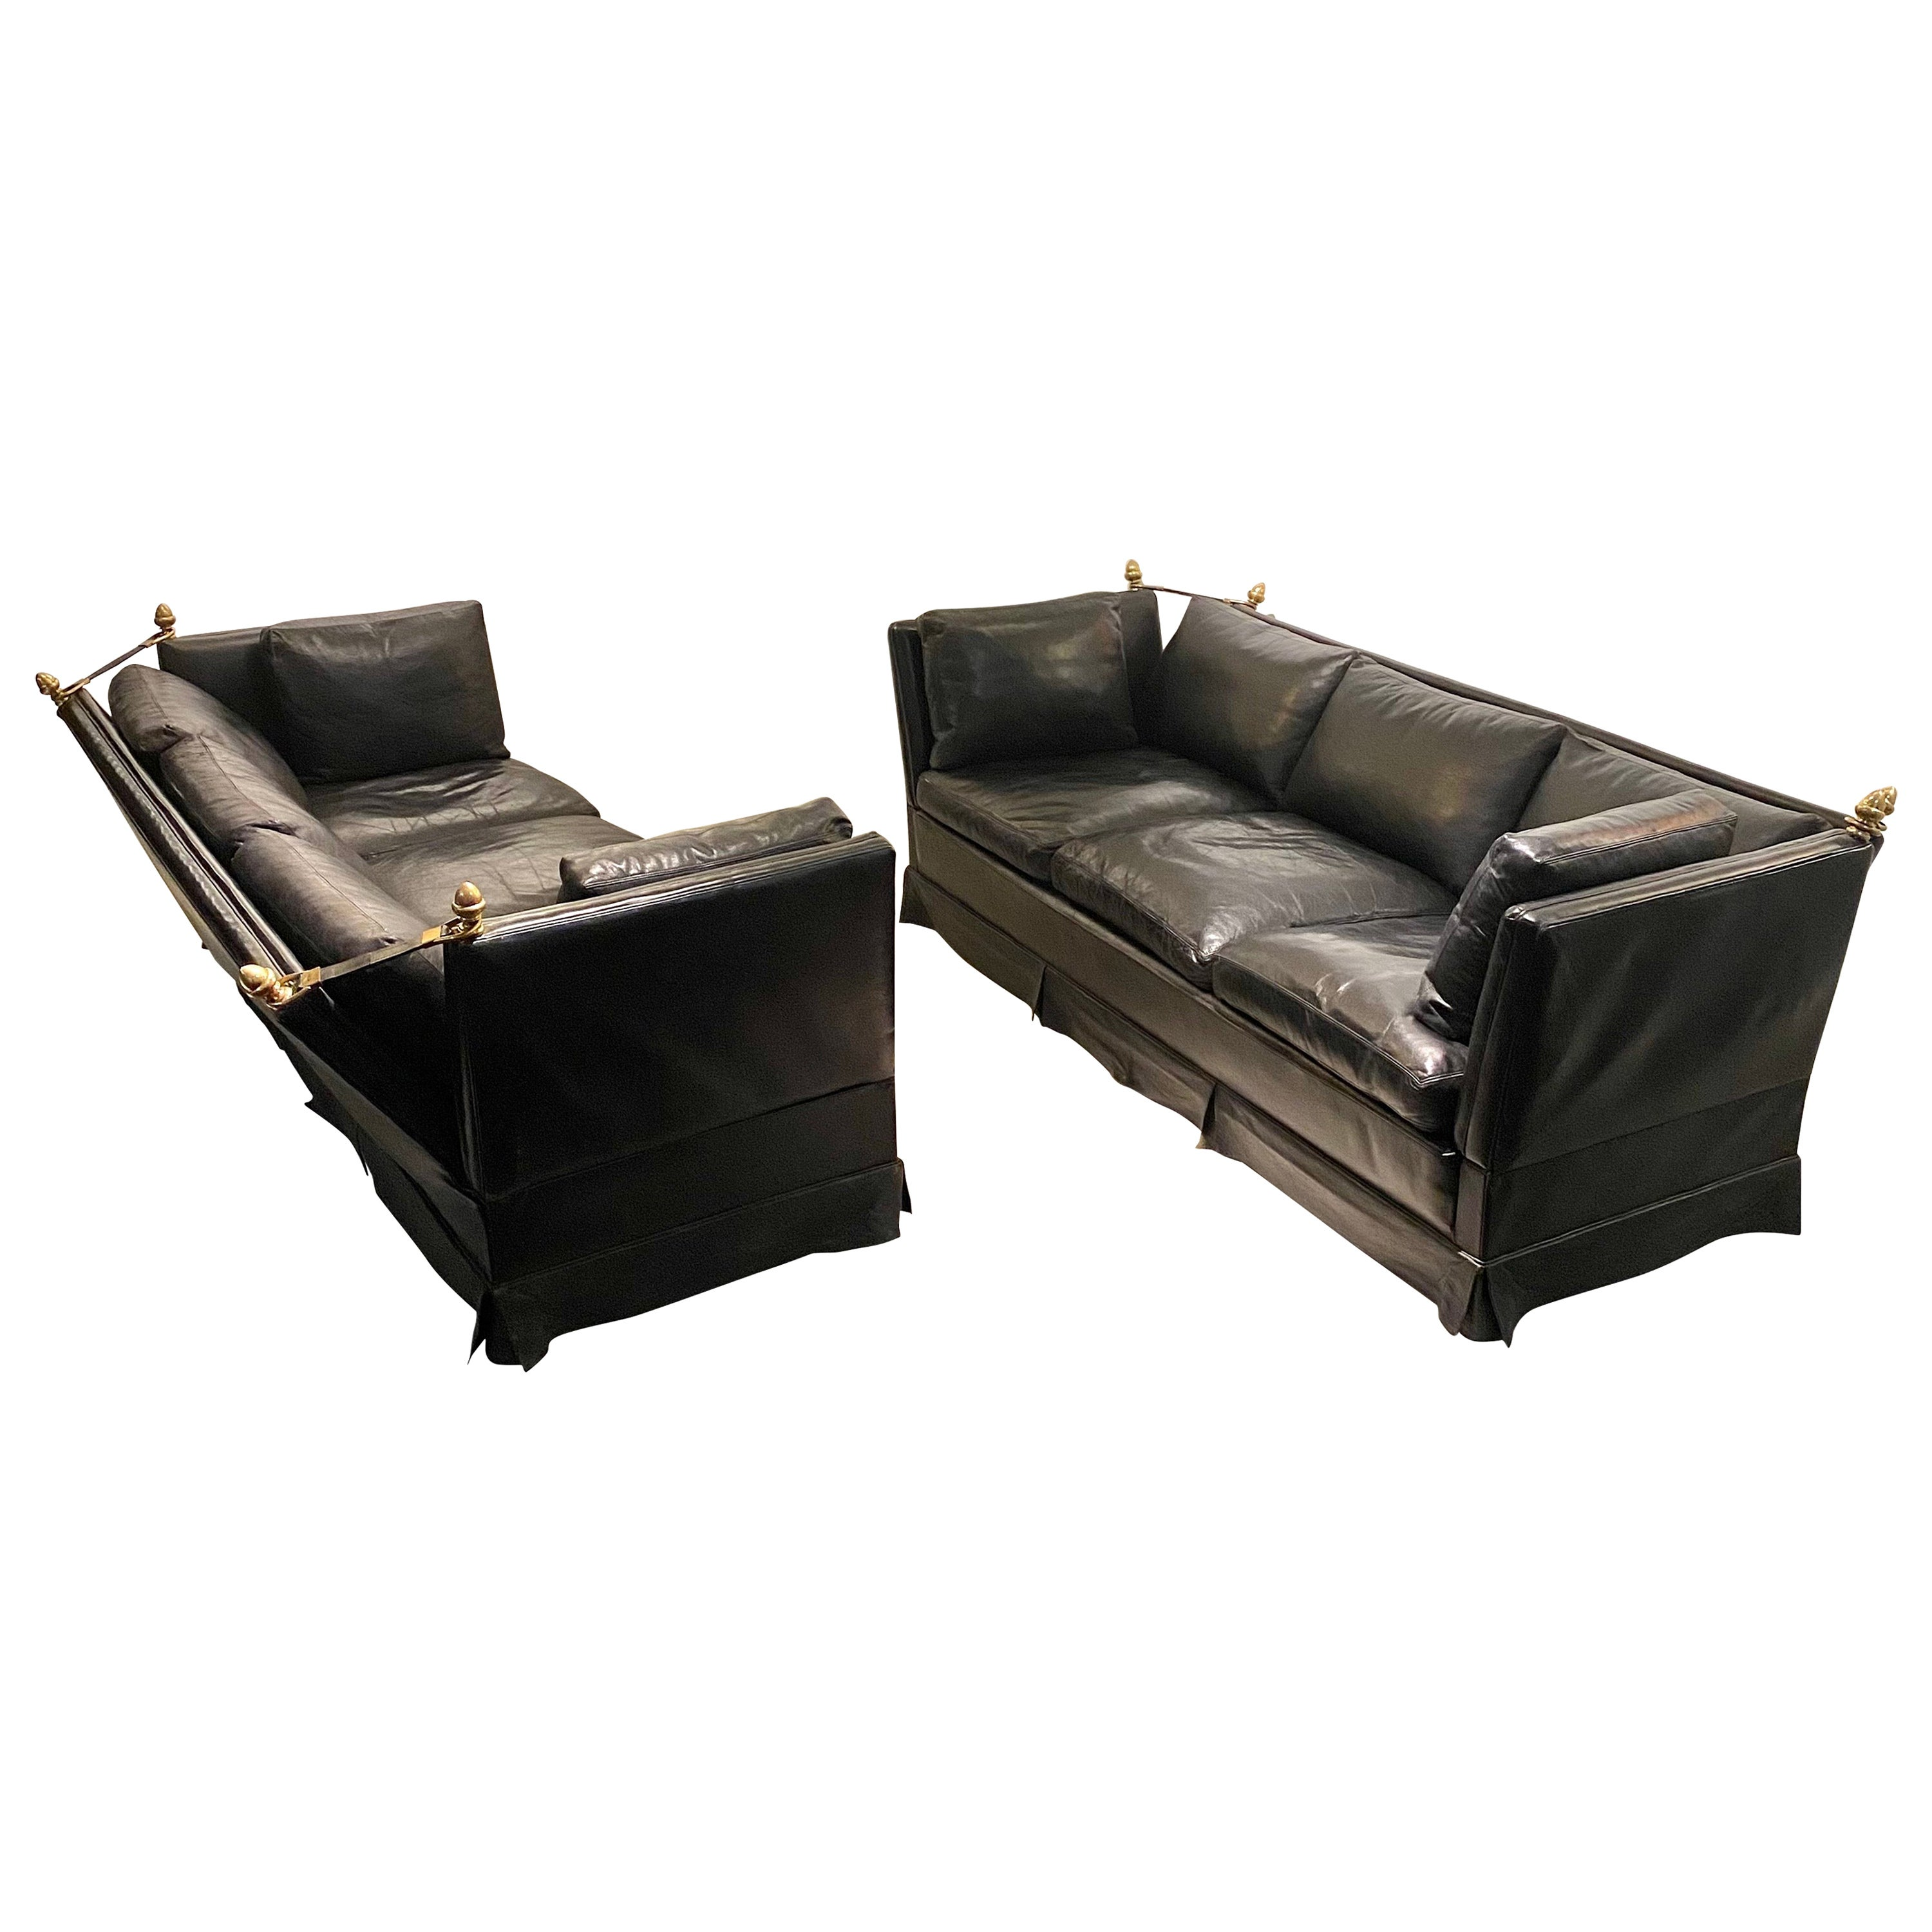 Pair of Neoclassical Sofa by Maison Jansen, France, 1970s